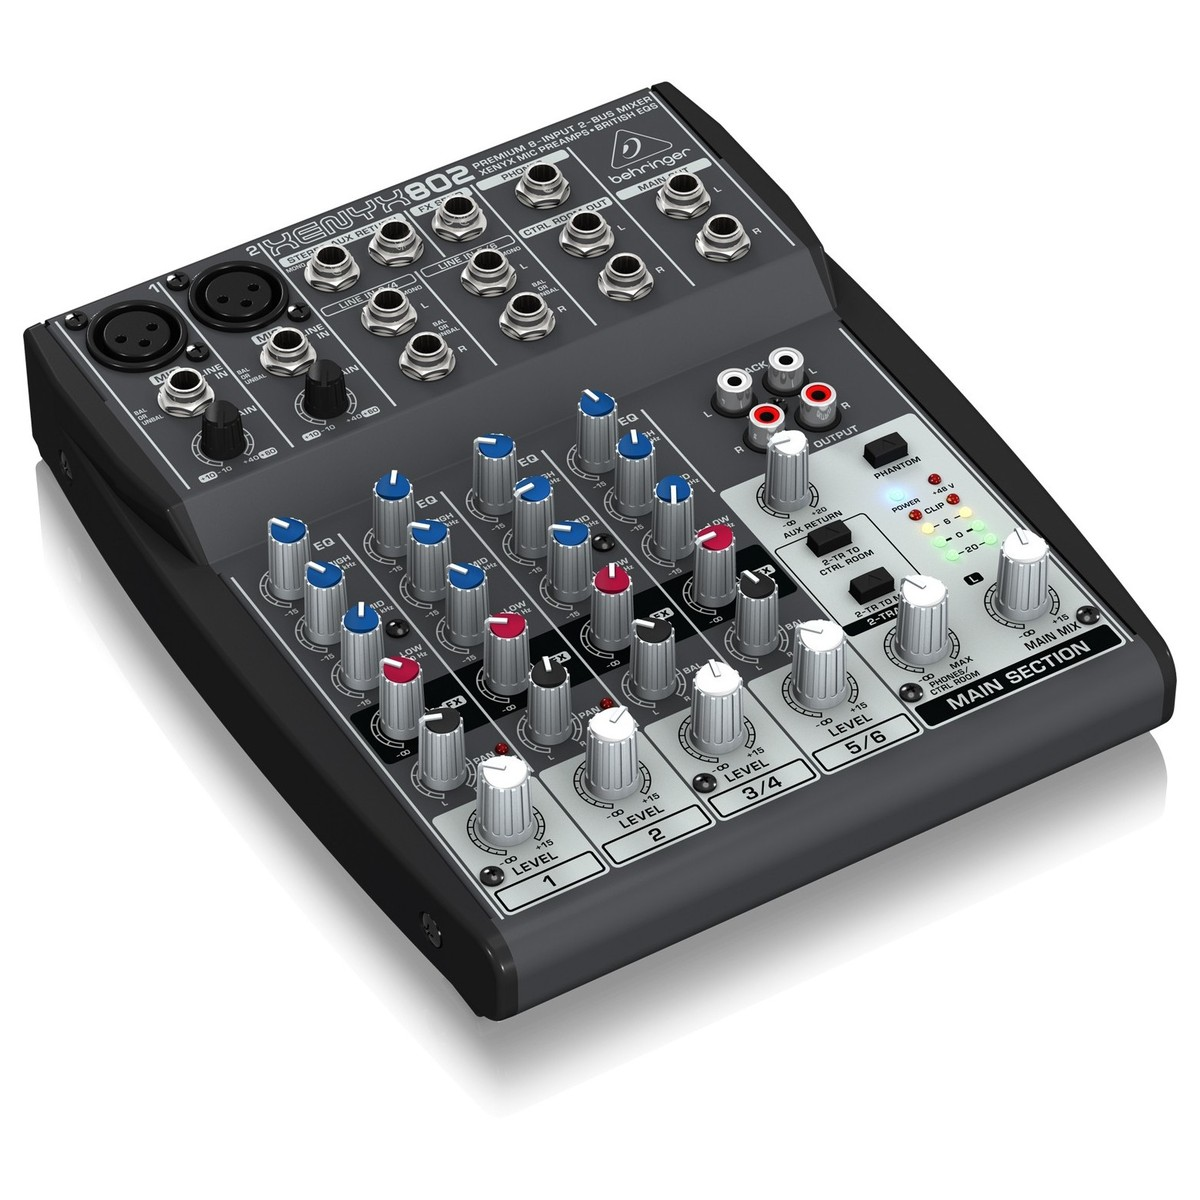 Behringer Xenyx 802 Mixer At Gear4music